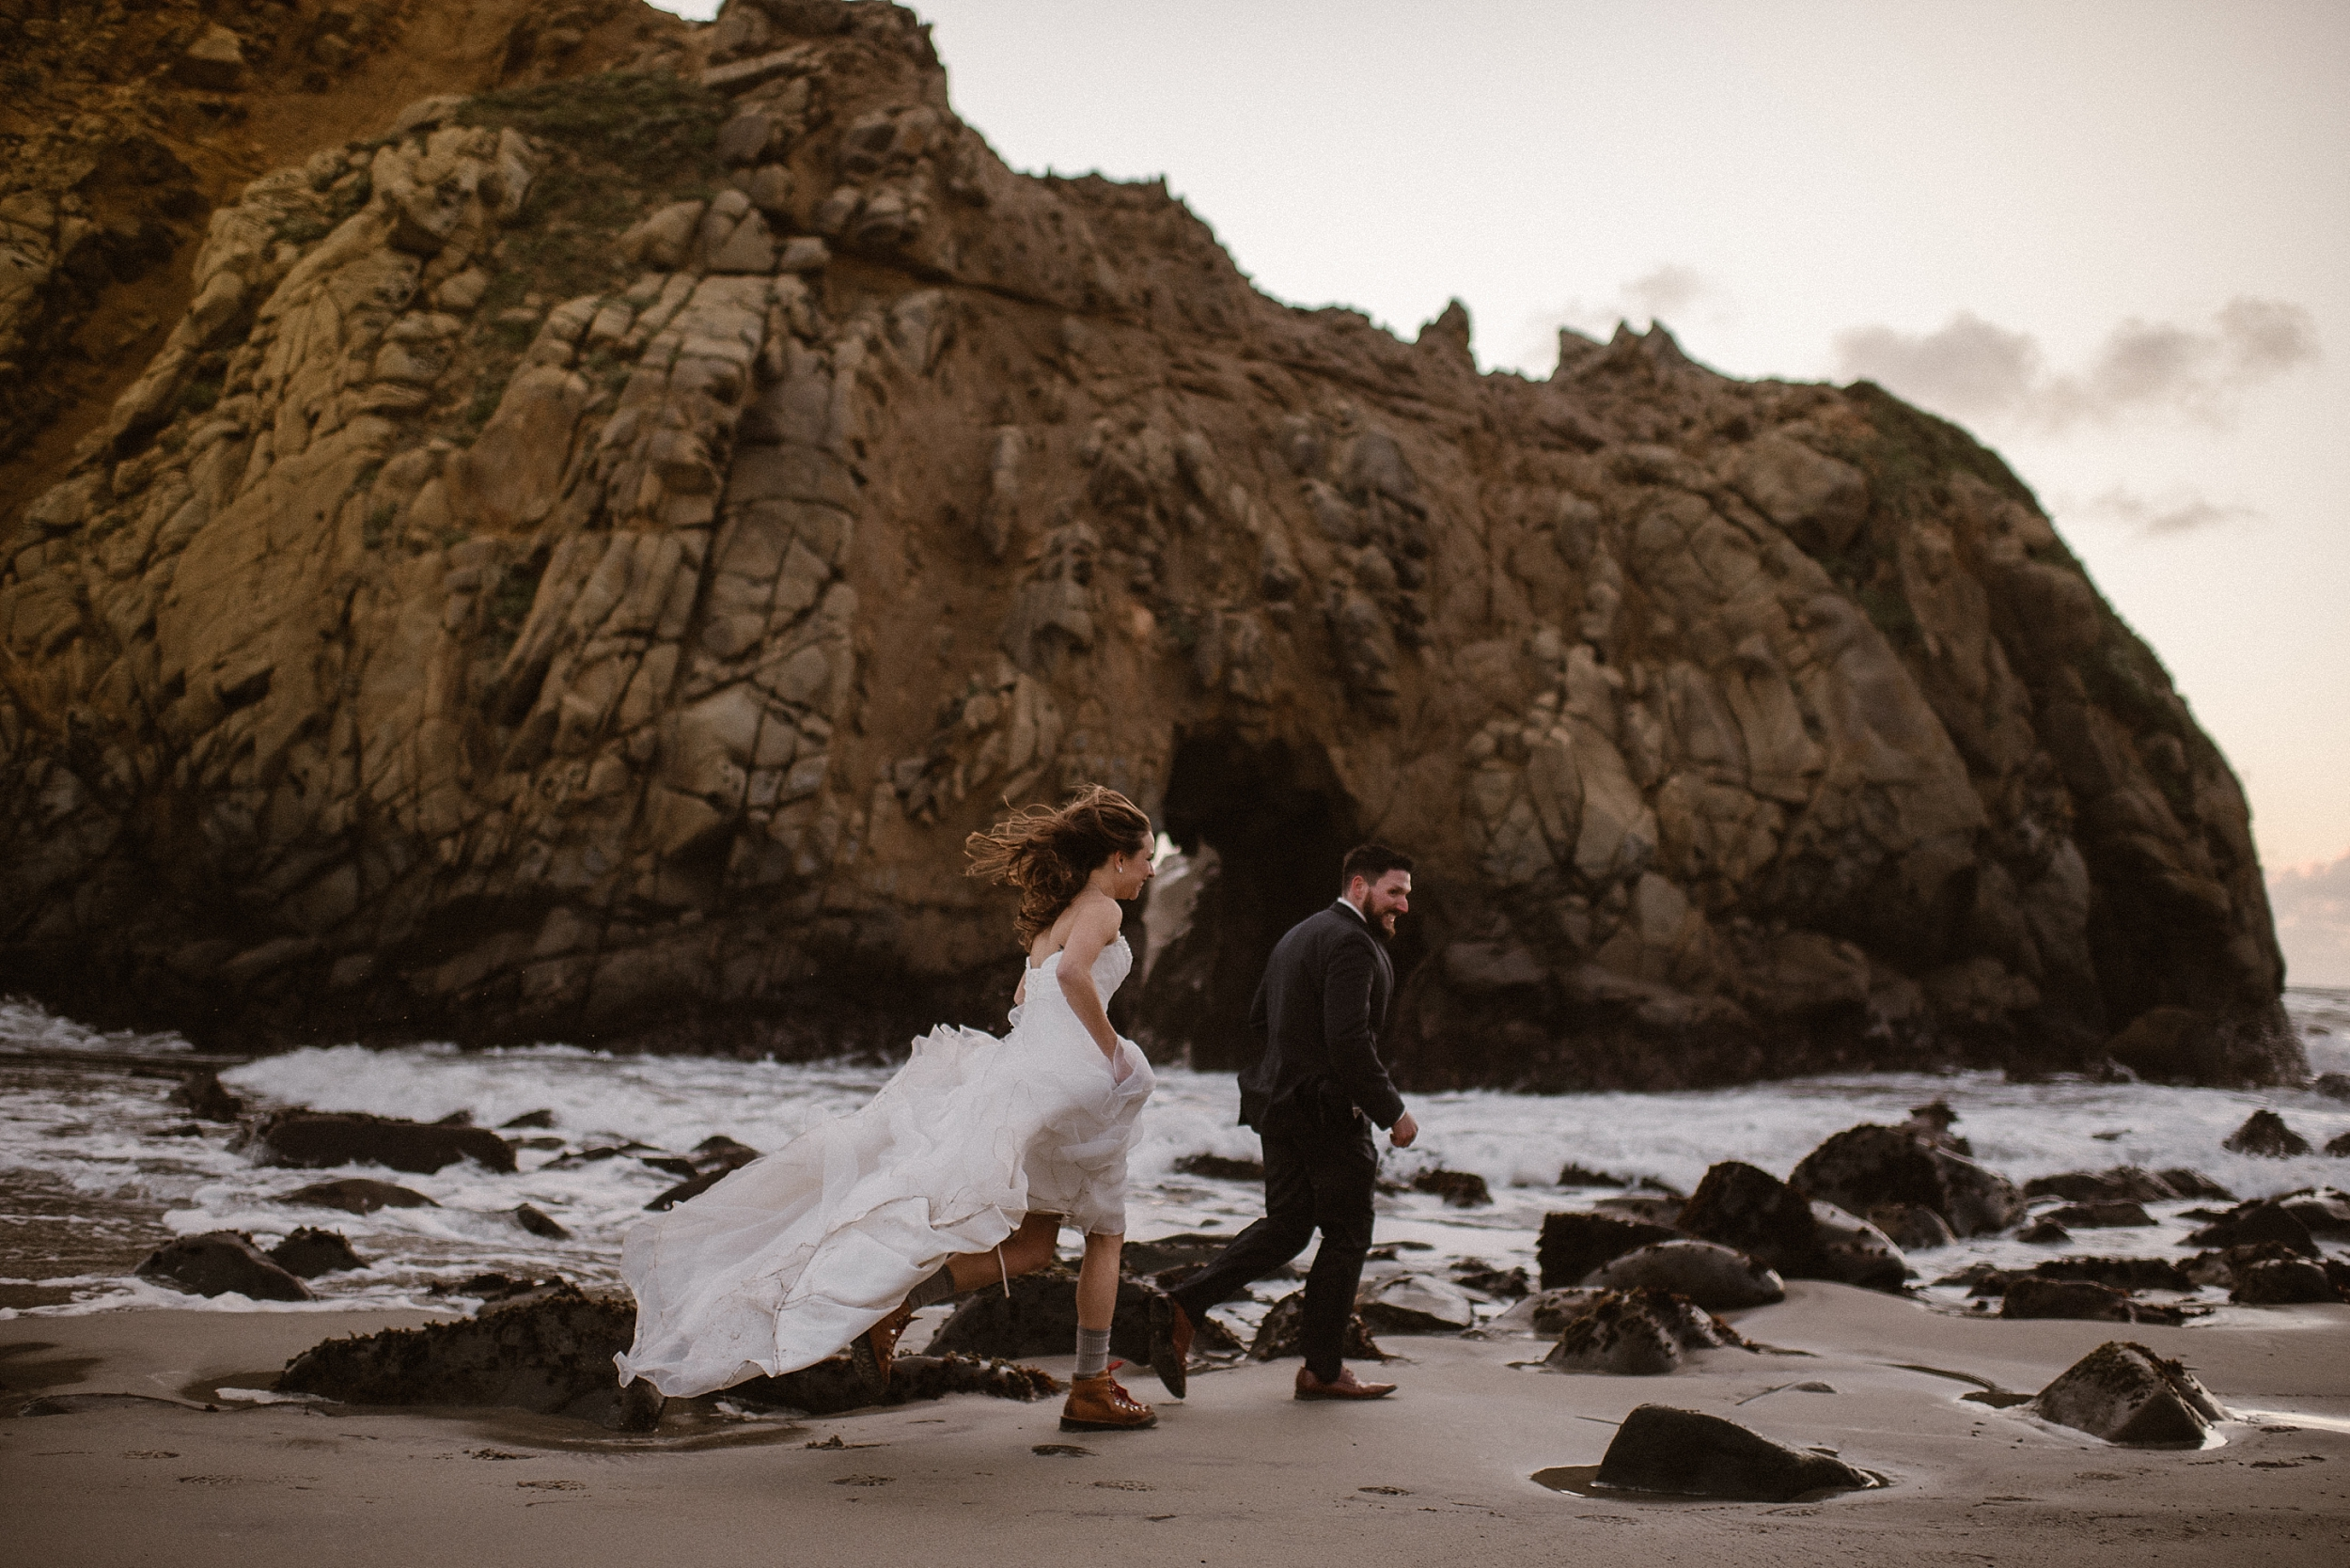 A bride and groom run along the rocky, sandy beach of the Oregon Coast. The bride, pulling her dress up to reveal hiking boots beneath chases after her groom as they head toward the water, an enormous boulder looming in the background. These adventure elopement pictures were captured by Adventure Instead, an Oregon elopement photographer.